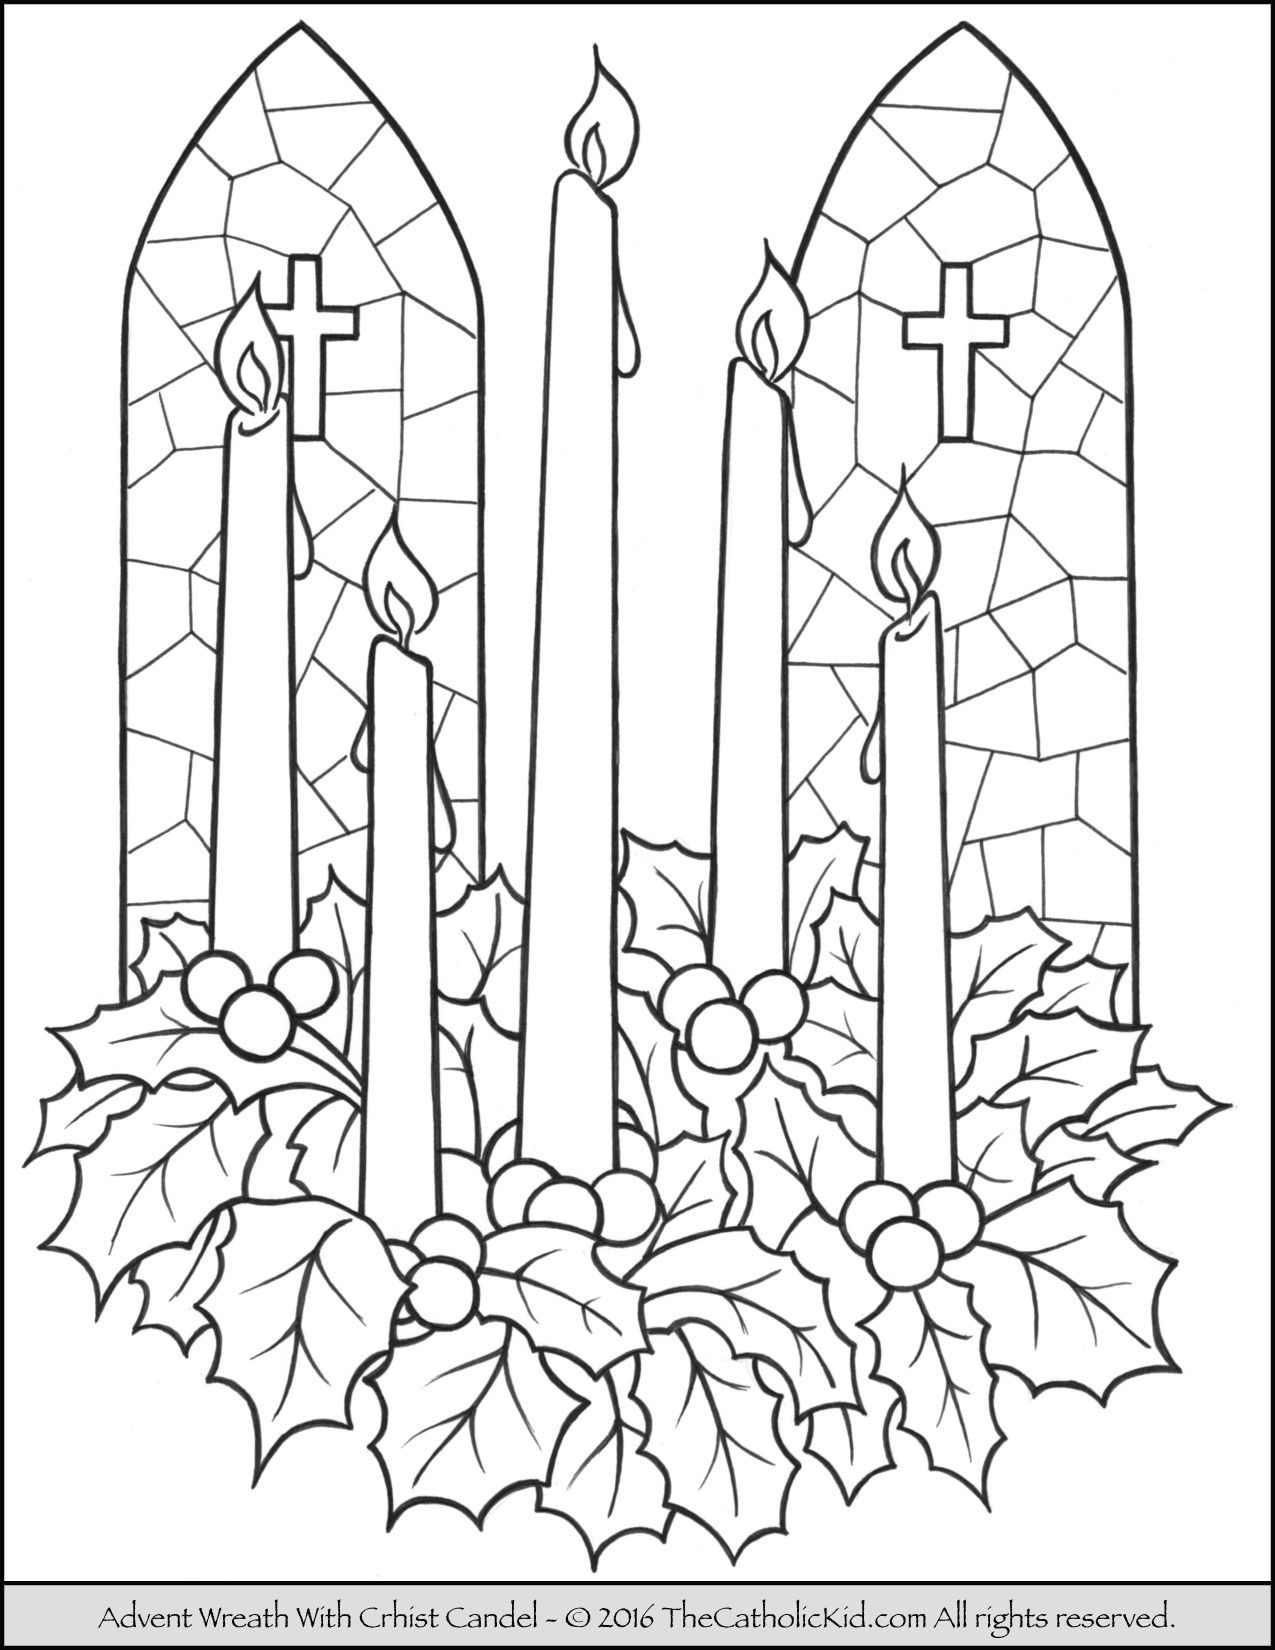 Advent Wreath Christ Candle Coloring Page   Art   Pinterest - Free Printable Advent Wreath